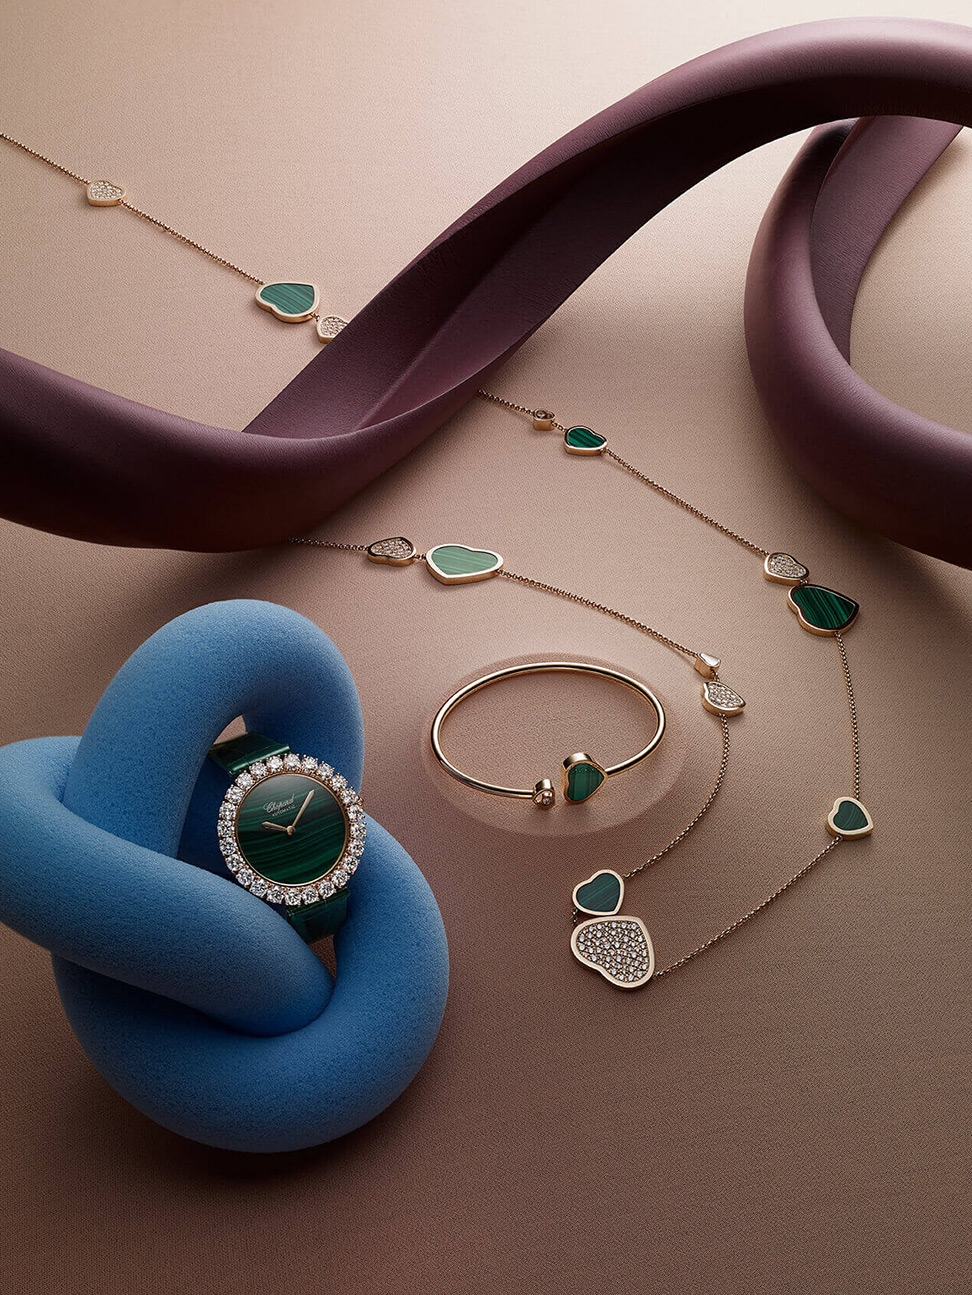 A collection of Chopard jewellery